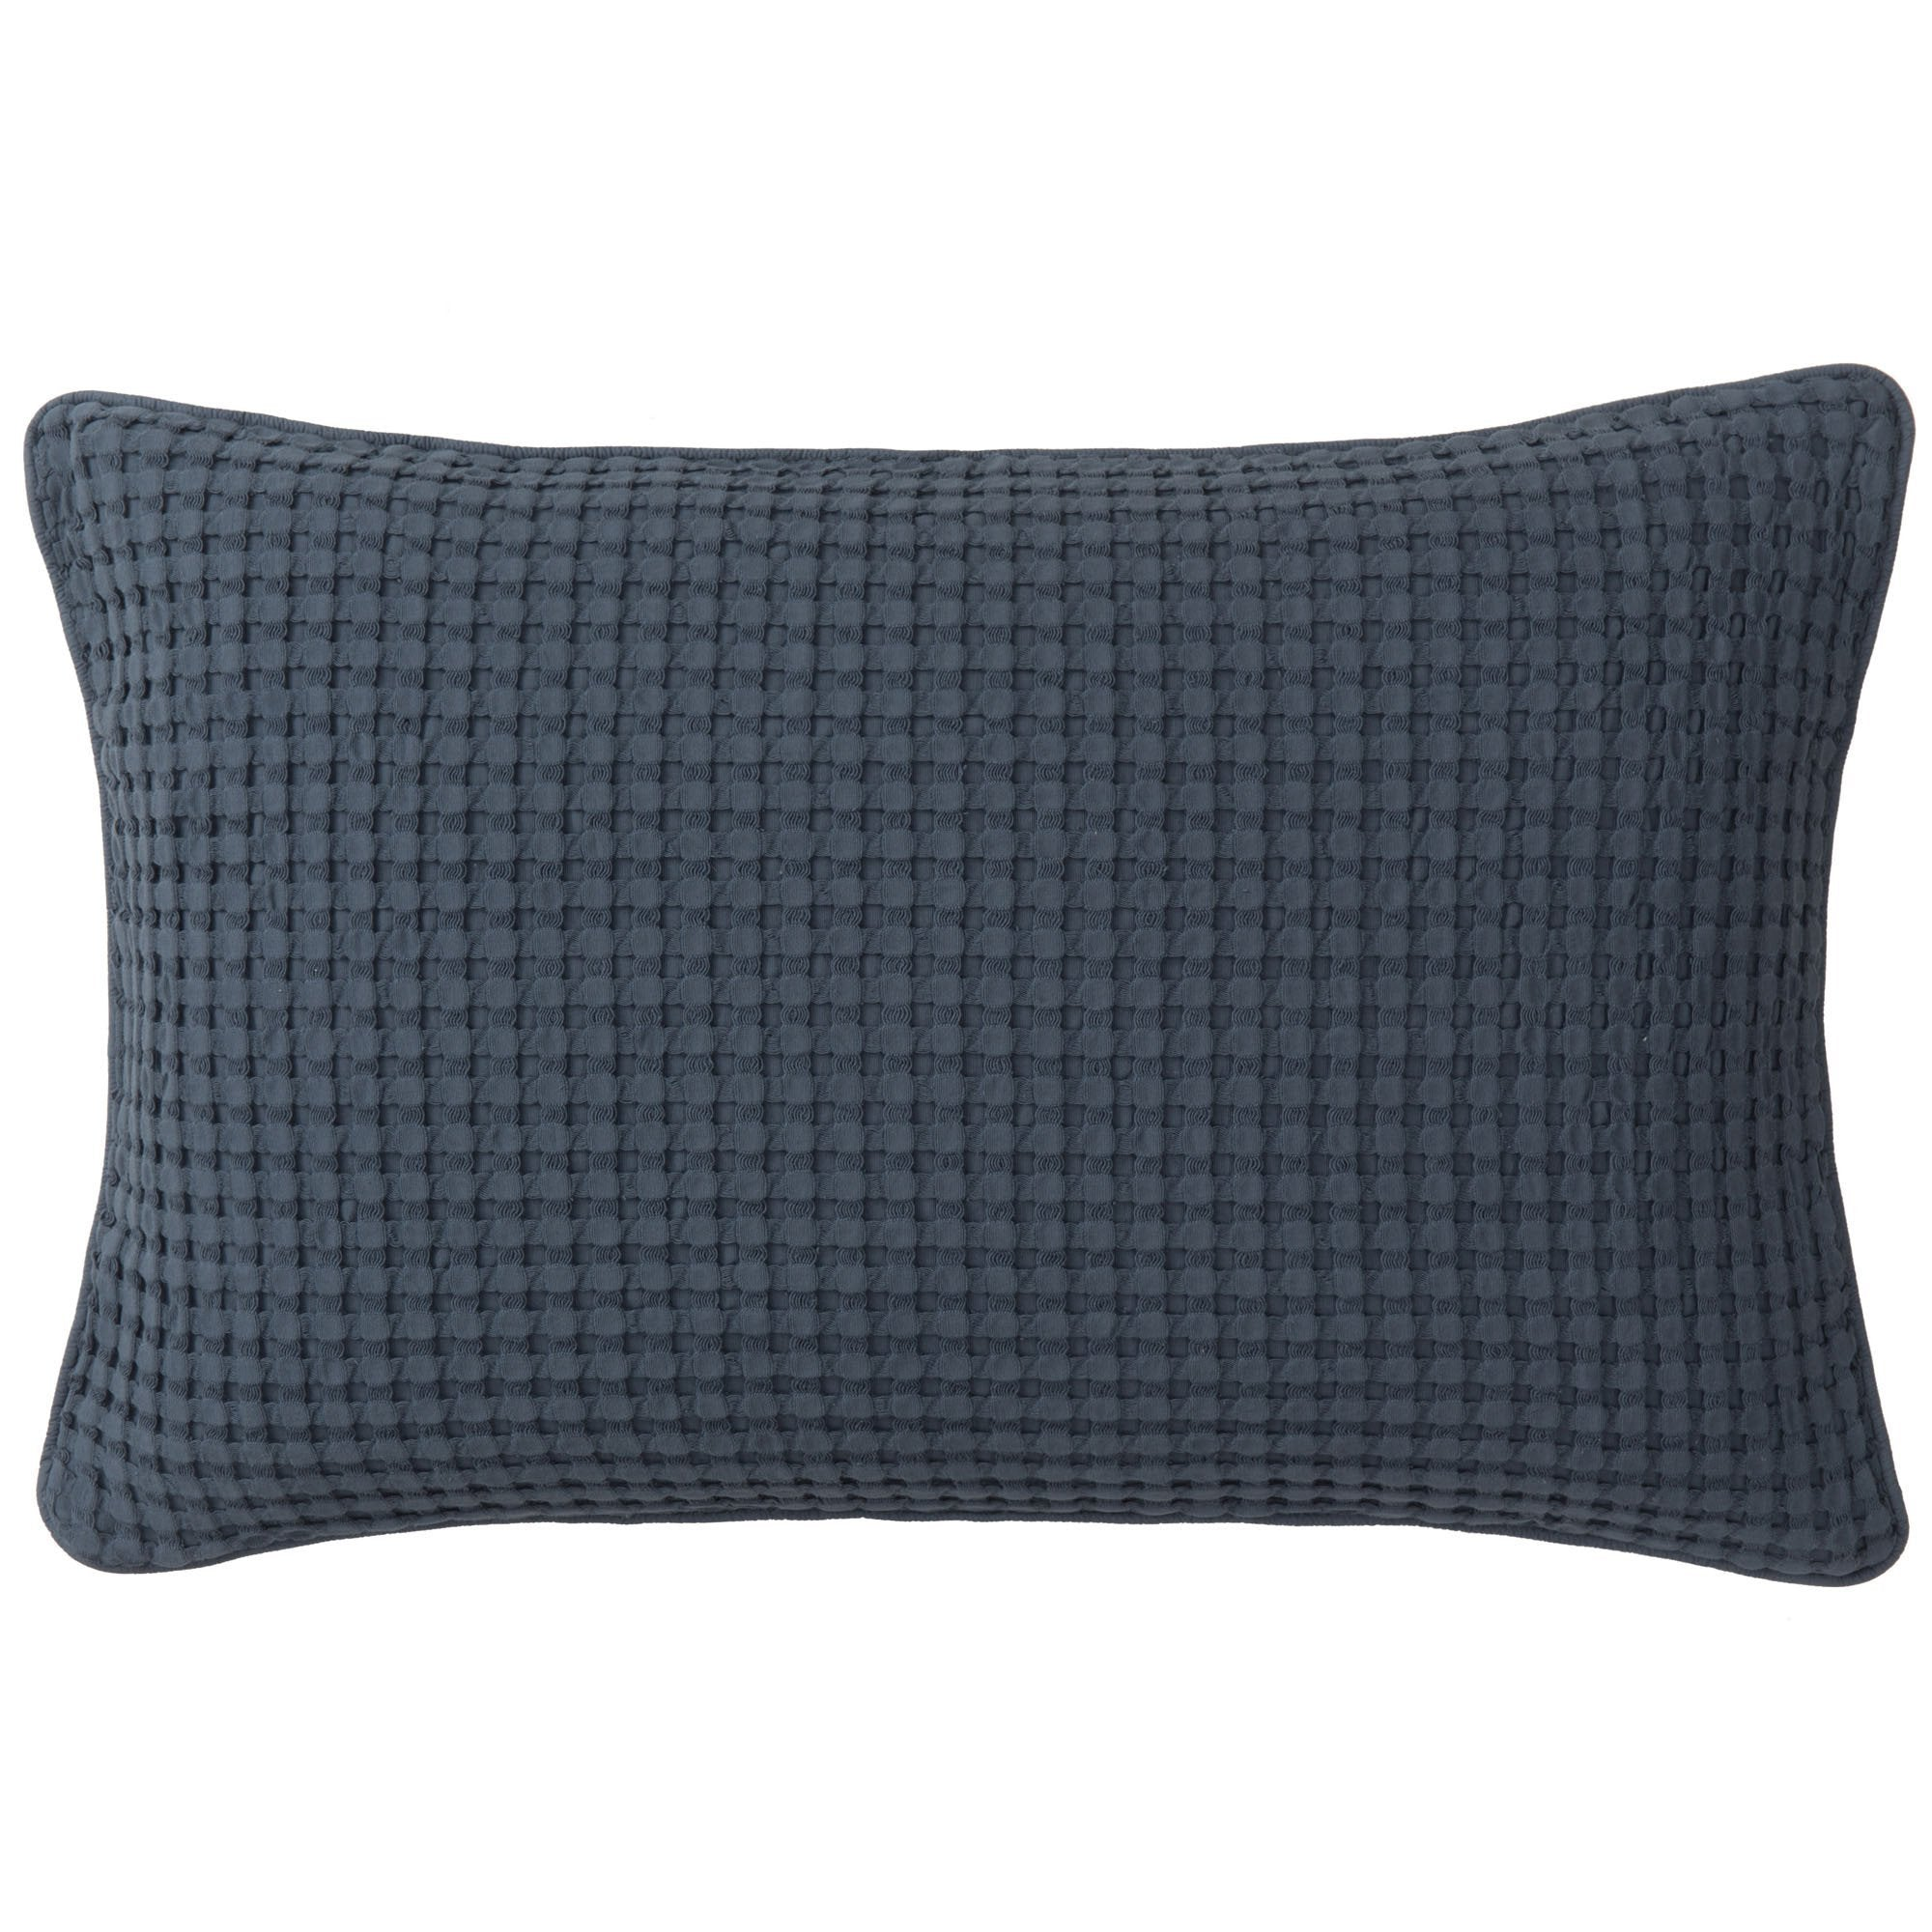 Veiros Cushion [Blue grey]